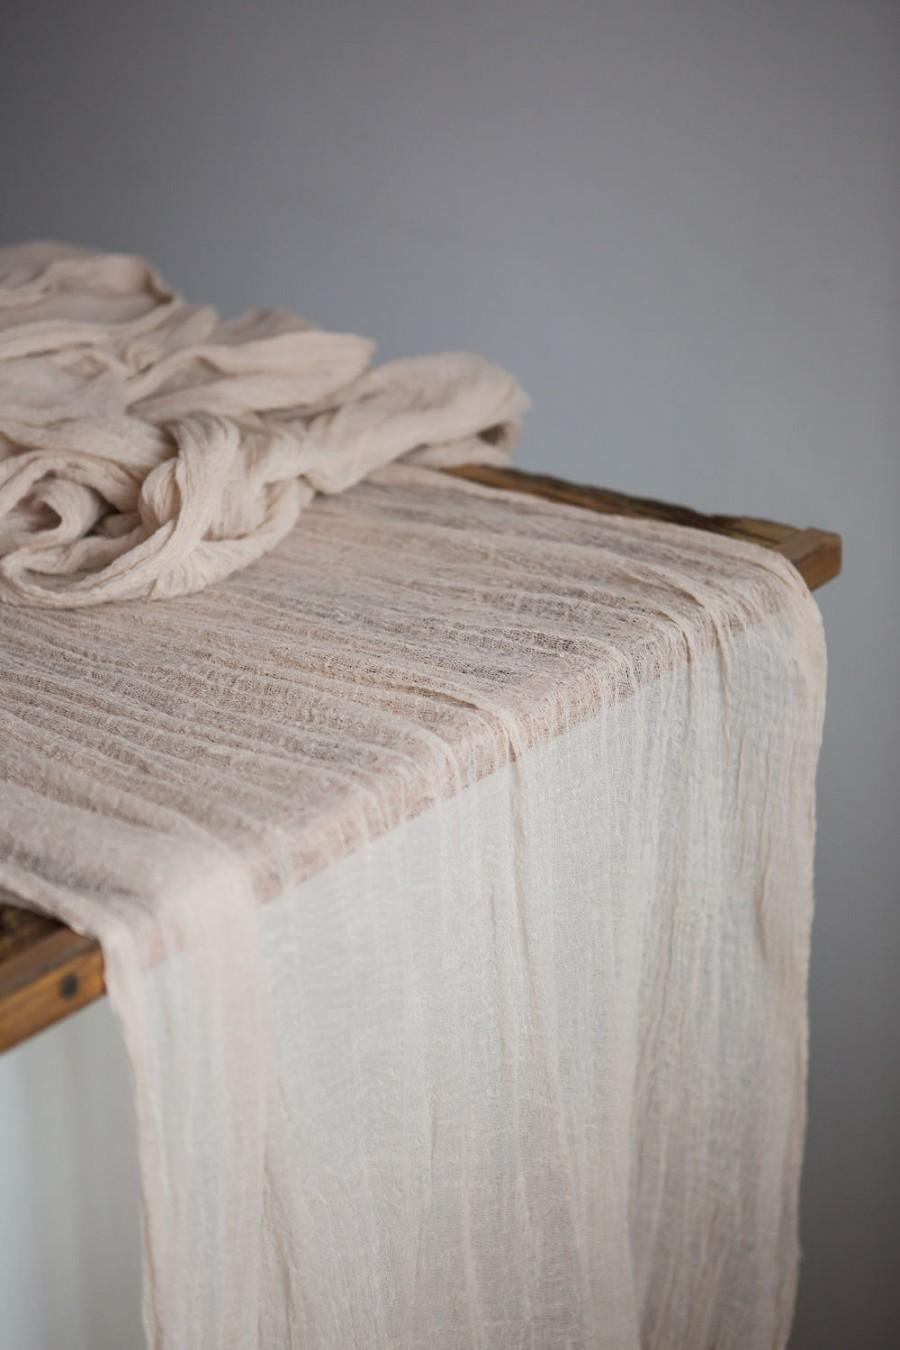 Mariage - Sand ceremony Gauze Runner Boho wedding centerpieces Cheese cloth table runner Hand dyed cotton runner Bridal shower Party decor Nude runner